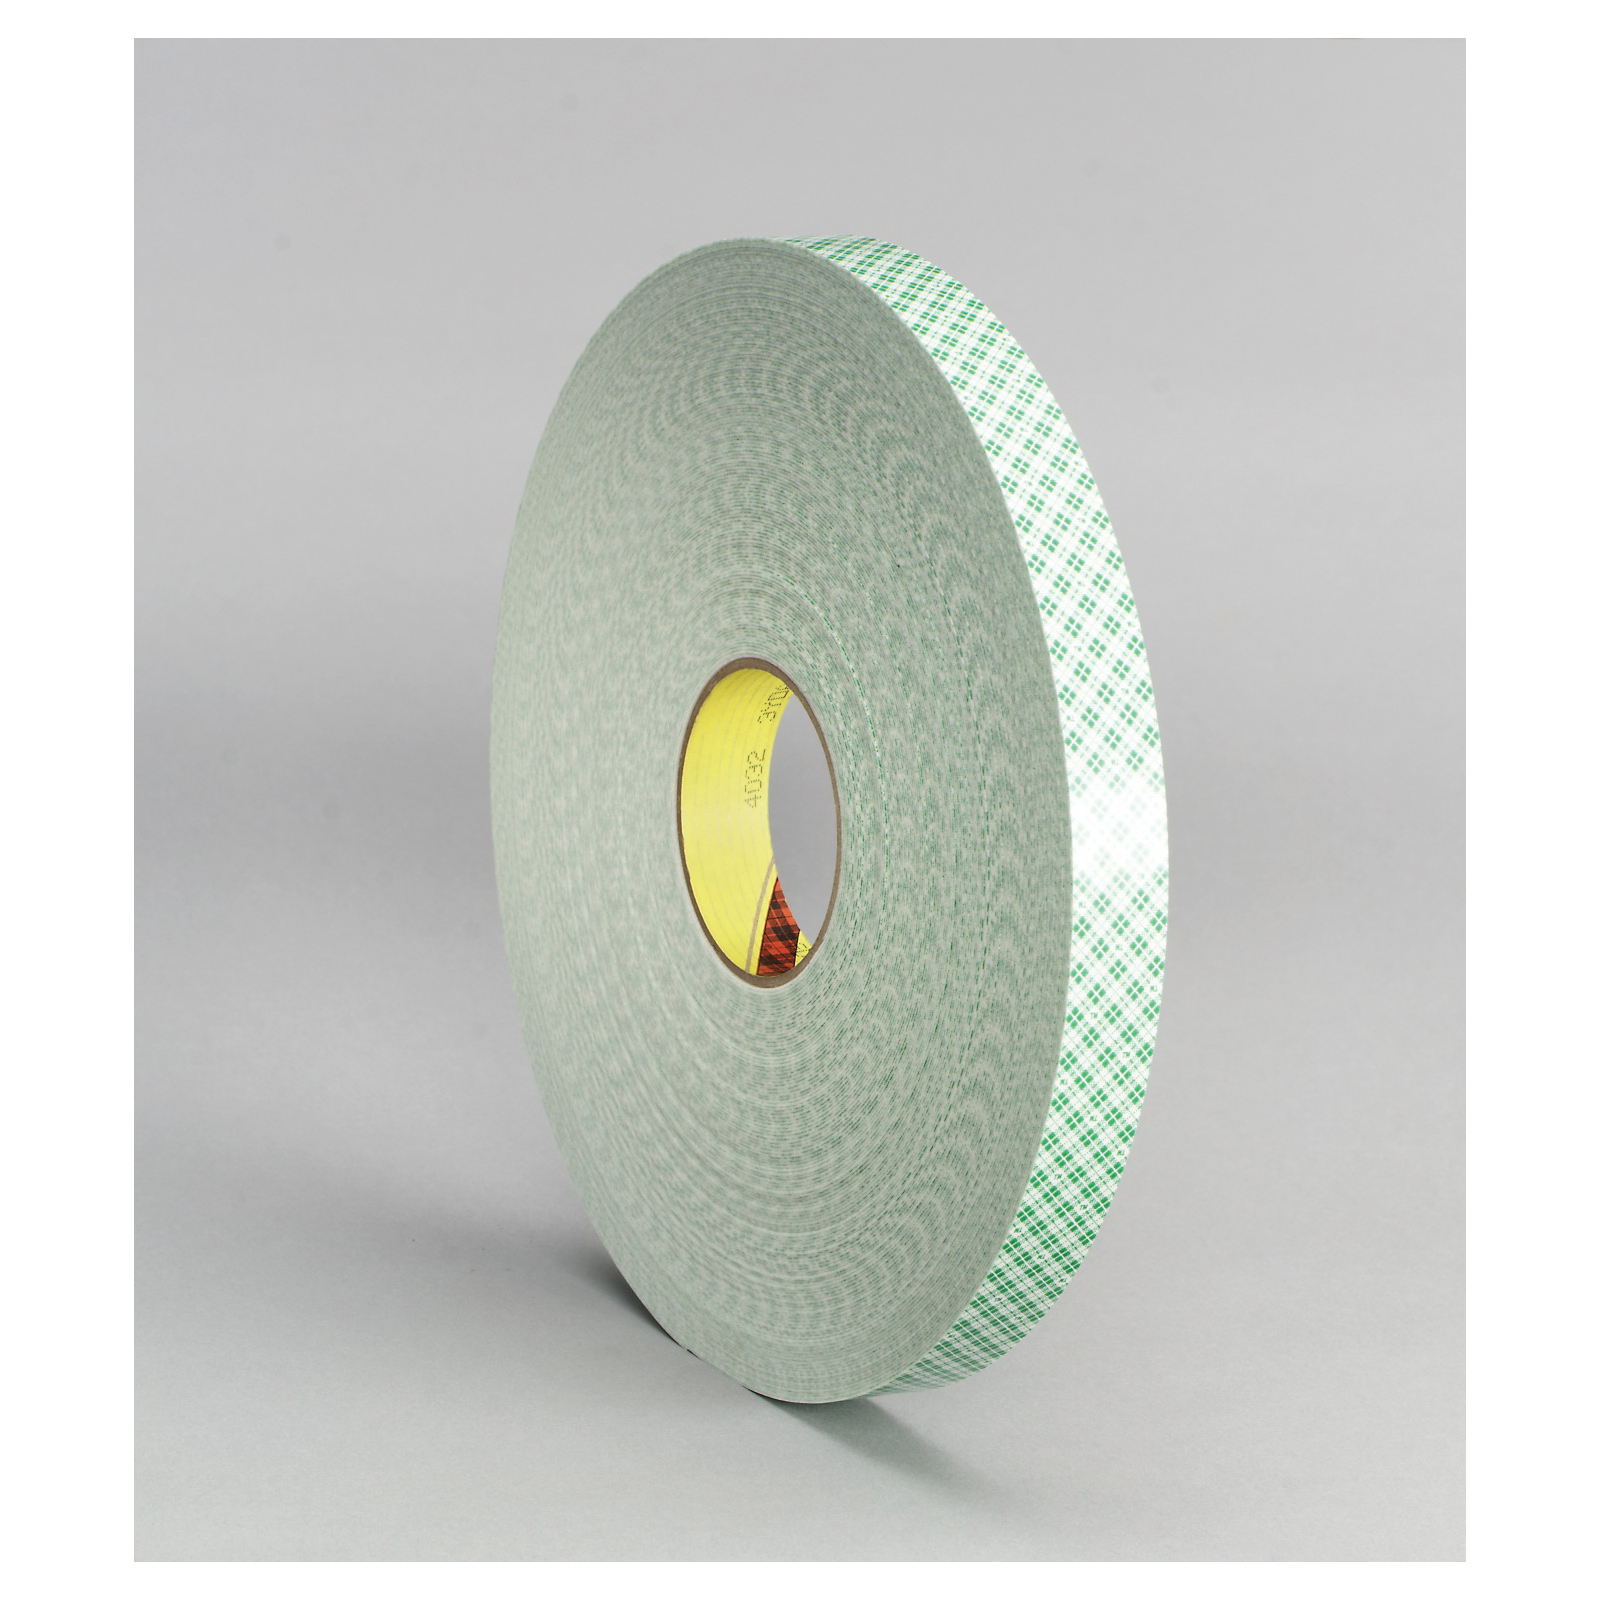 3M™ 021200-03362 Double Coated Tape, 72 yd L x 1-1/2 in W, 31 mil THK, Acrylic Adhesive, Urethane Foam Backing, Off-White